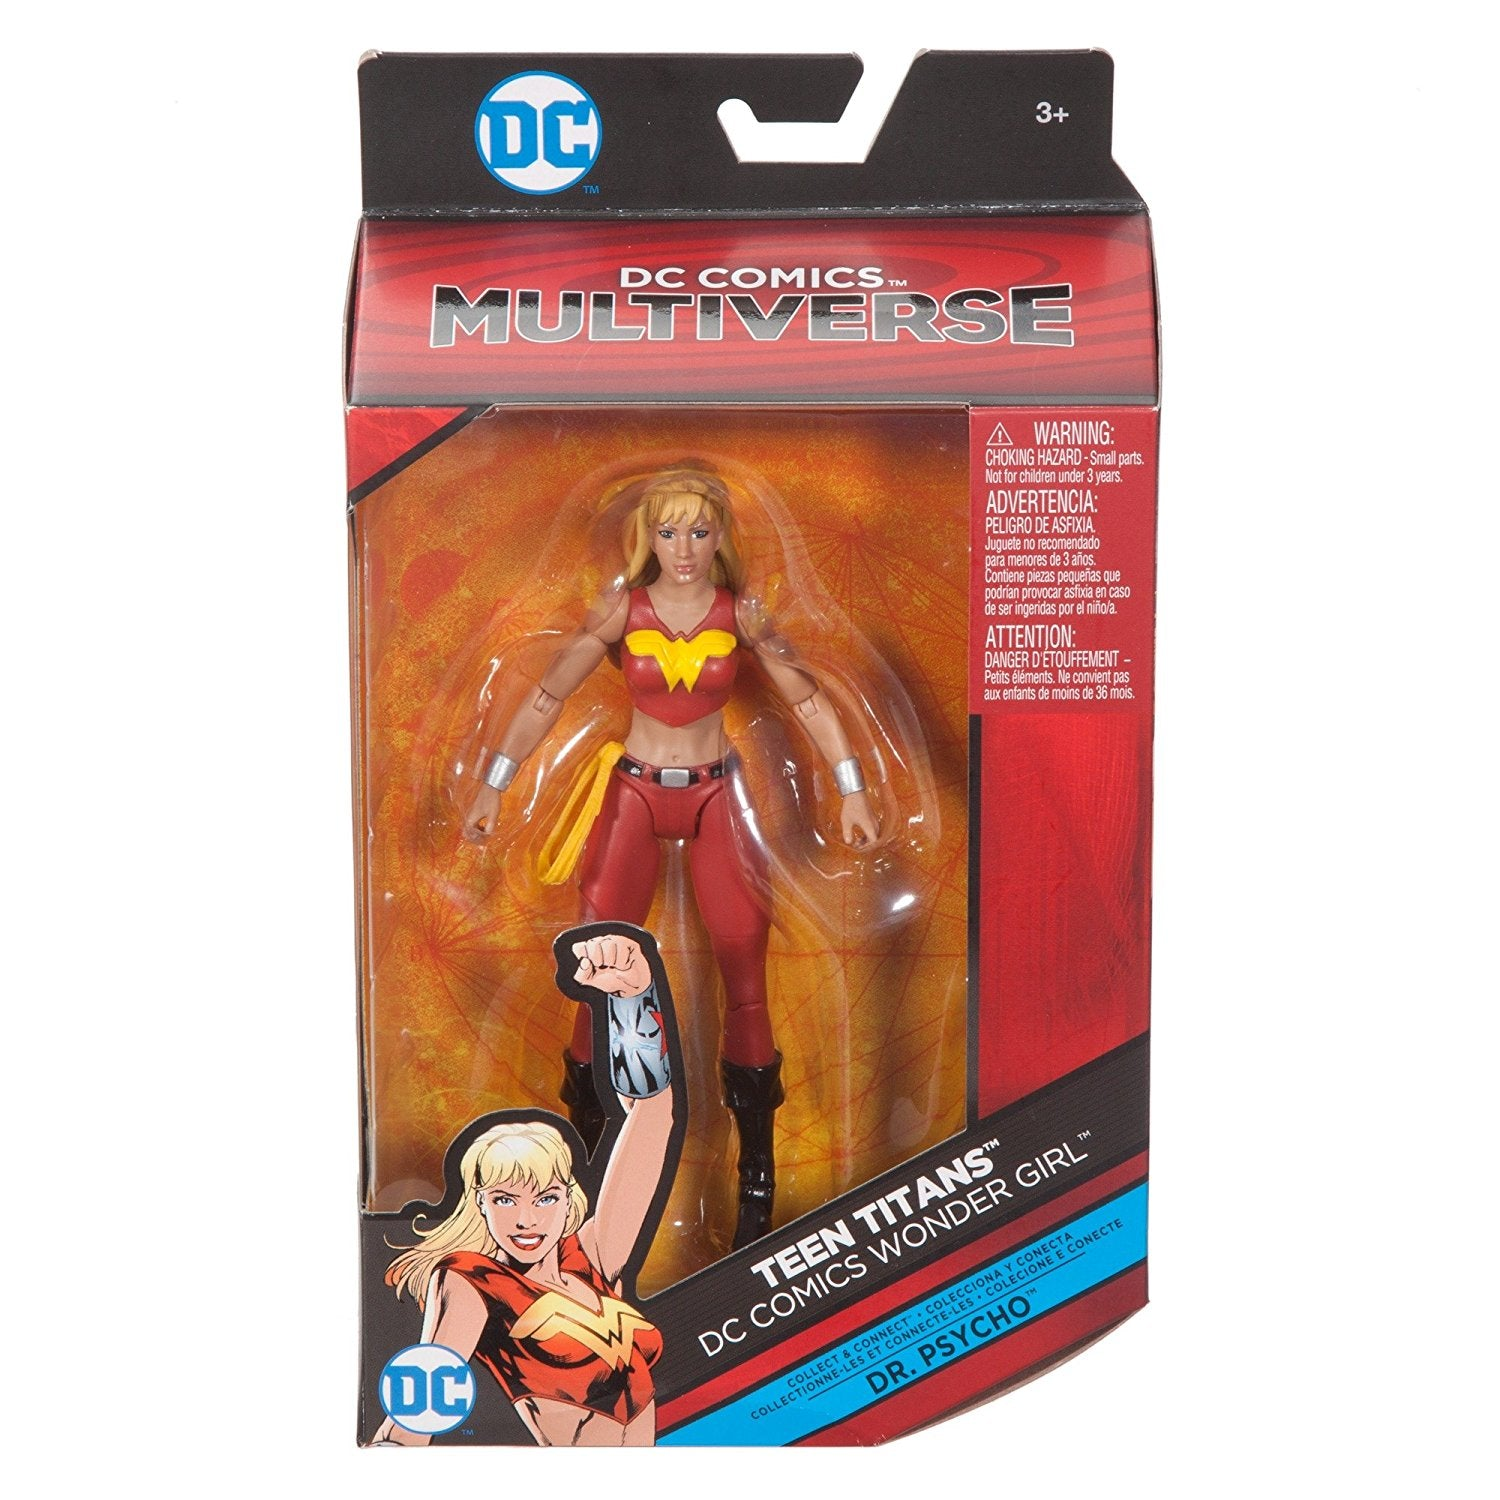 Wonder Girl DC Comics Multiverse Teen Titans Action Figure